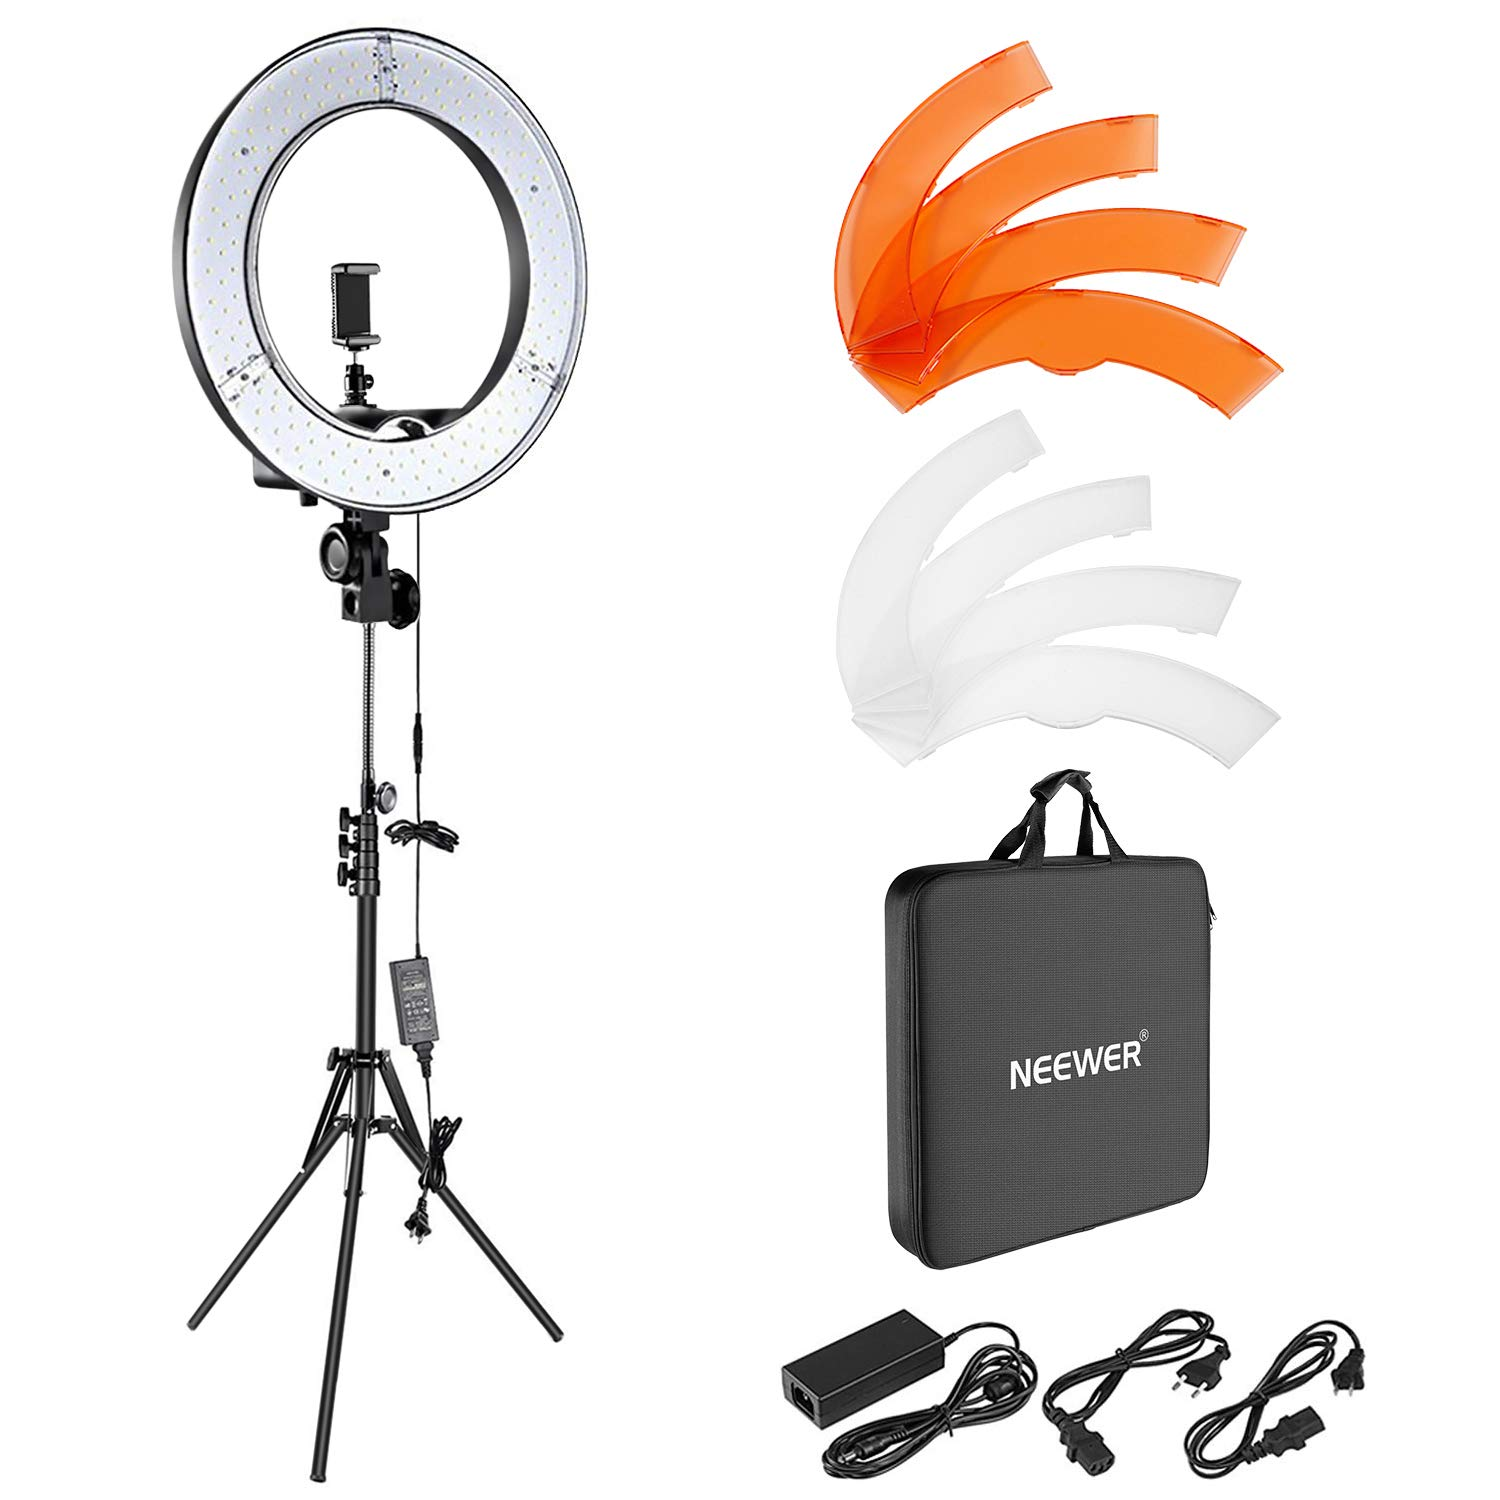 Ring Camera Light Youtube: Amazon.com : Voilamart Rolling Makeup Case Trolley 2 In 1